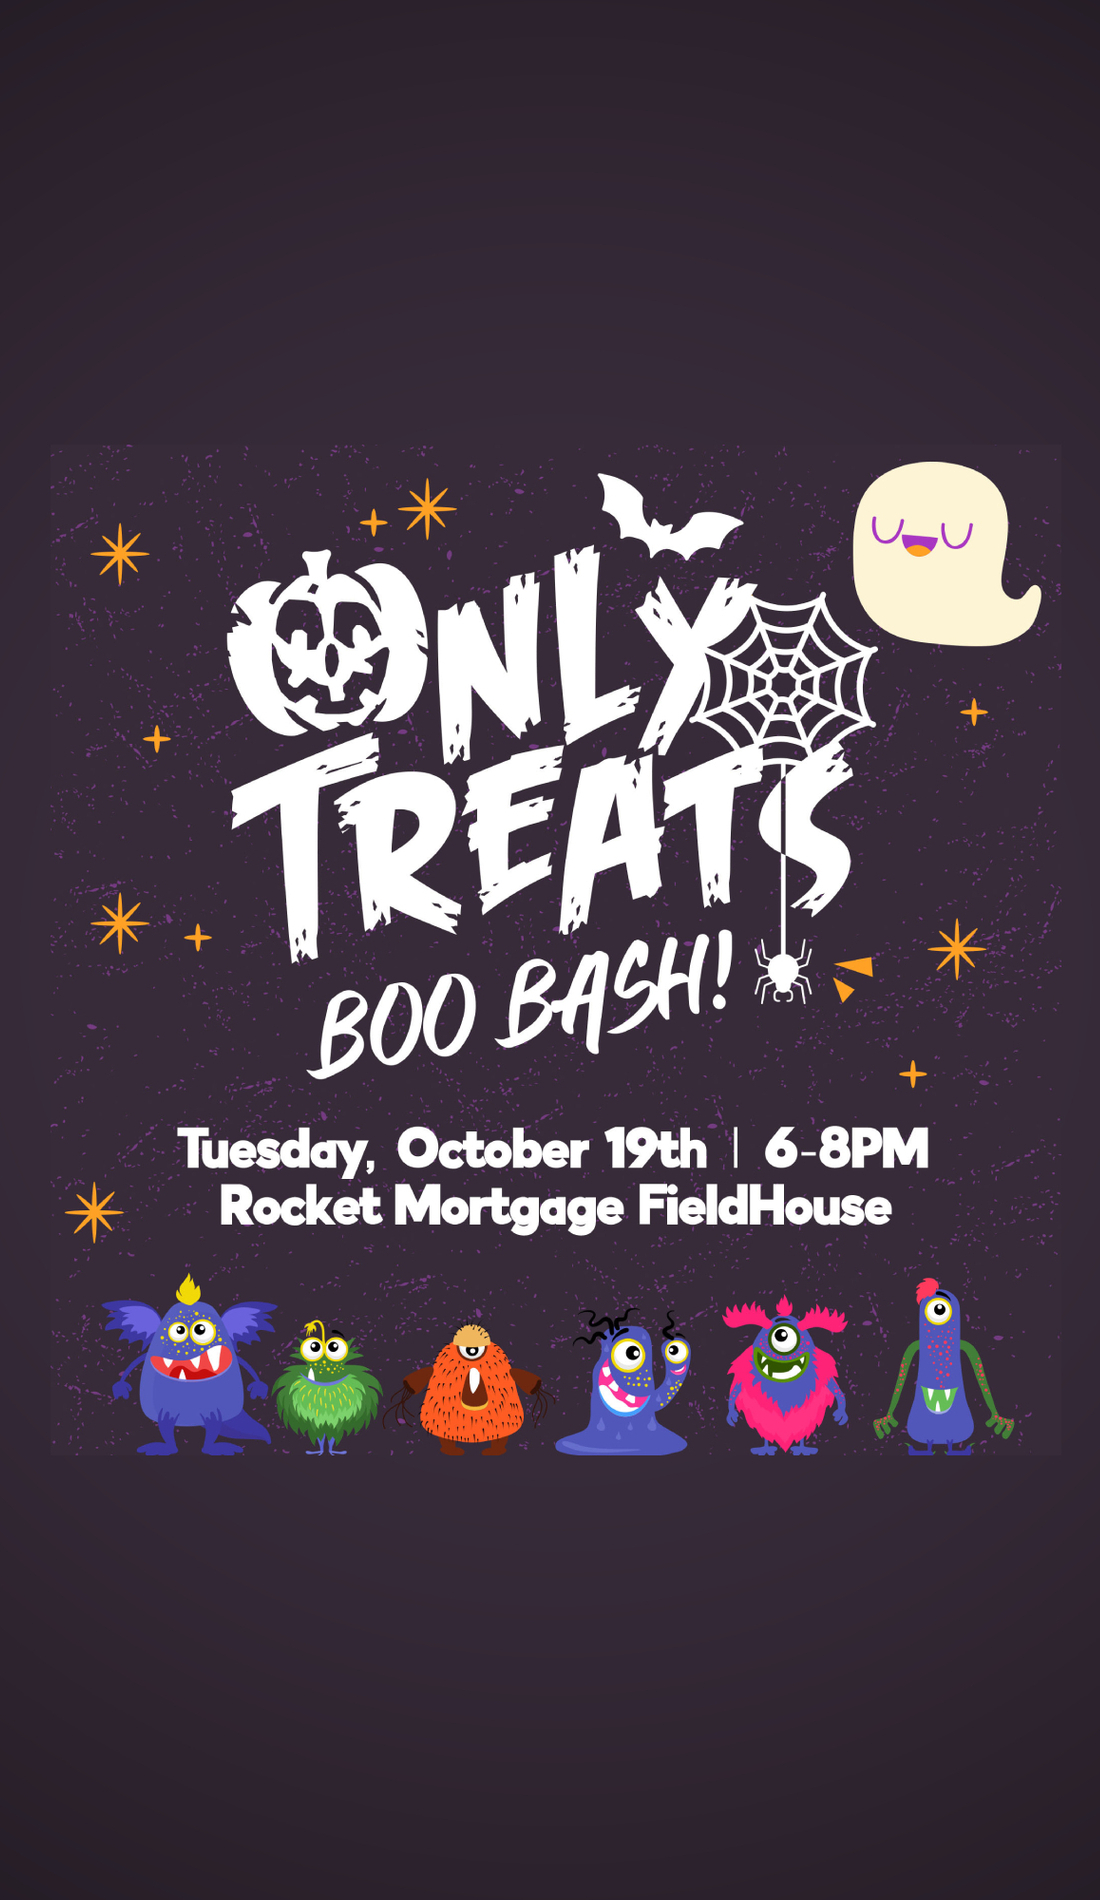 A Only Treats Boo Bash live event